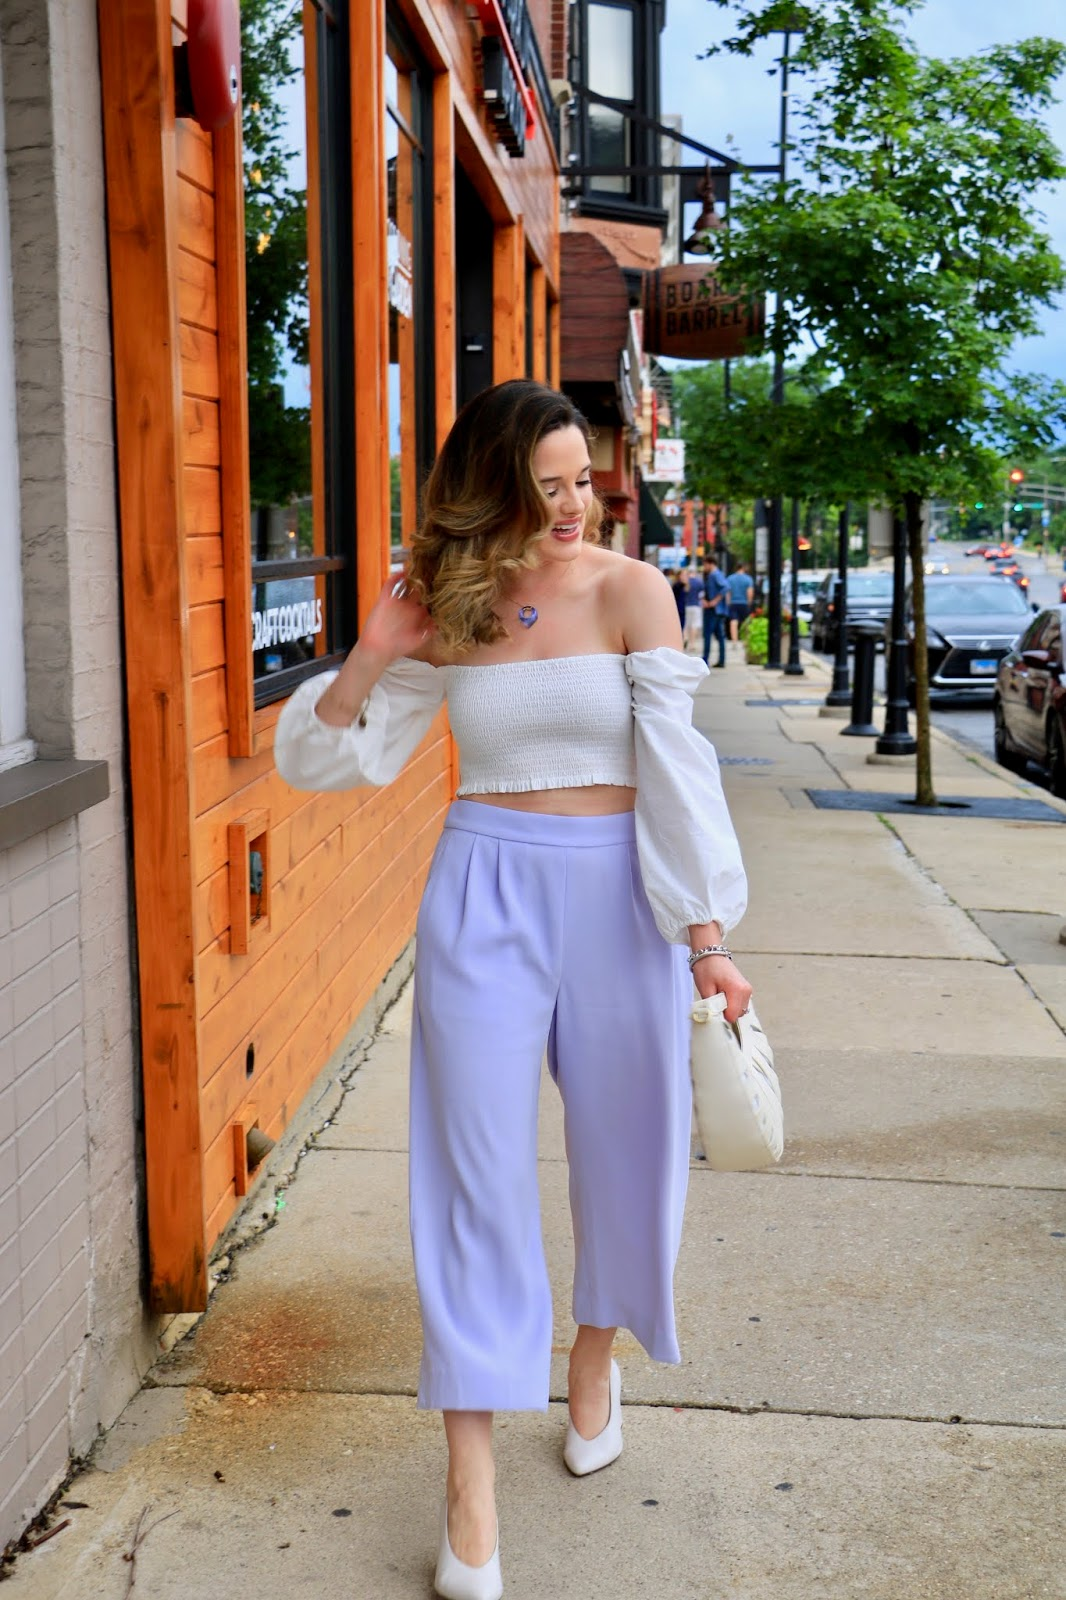 Nyc fashion blogger Kathleen Harper providing summer outfit inspiration by wearing a white off-the-shoulder crop top and high-waisted pants.